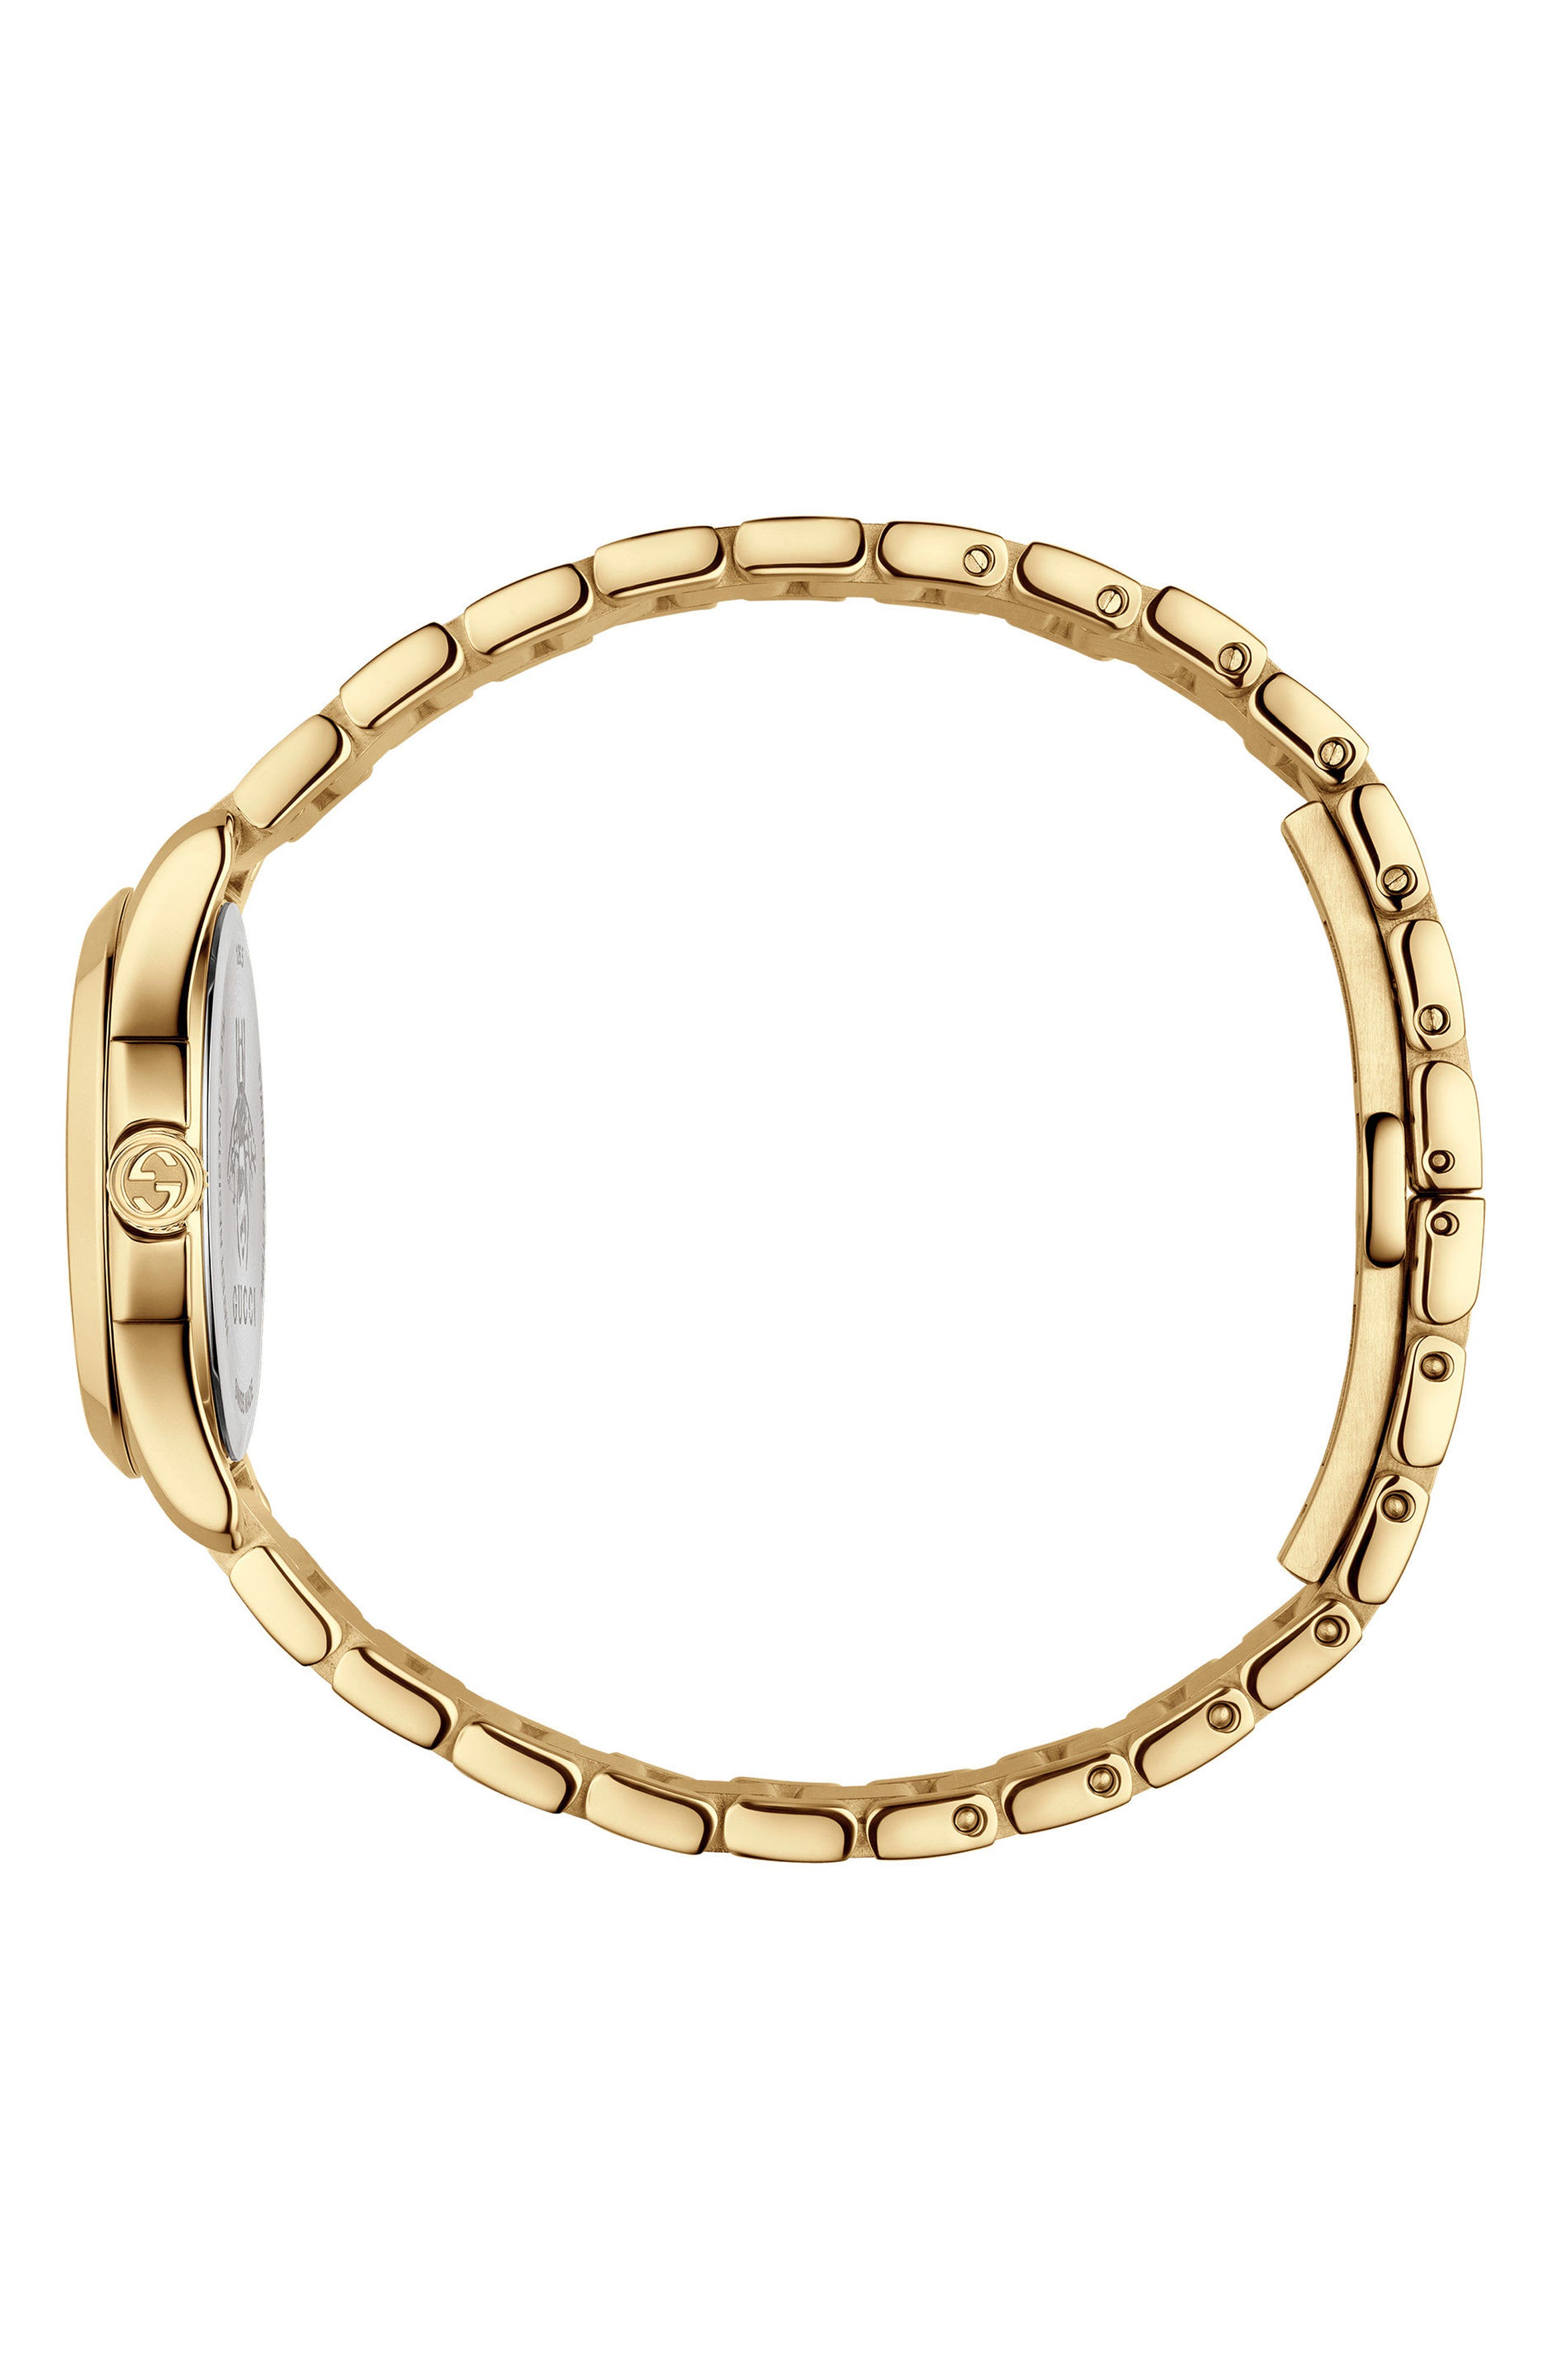 GUCCI, G-Timeless Bracelet Watch, 27mm, Alternate thumbnail 3, color, GOLD/ SILVER/ GOLD